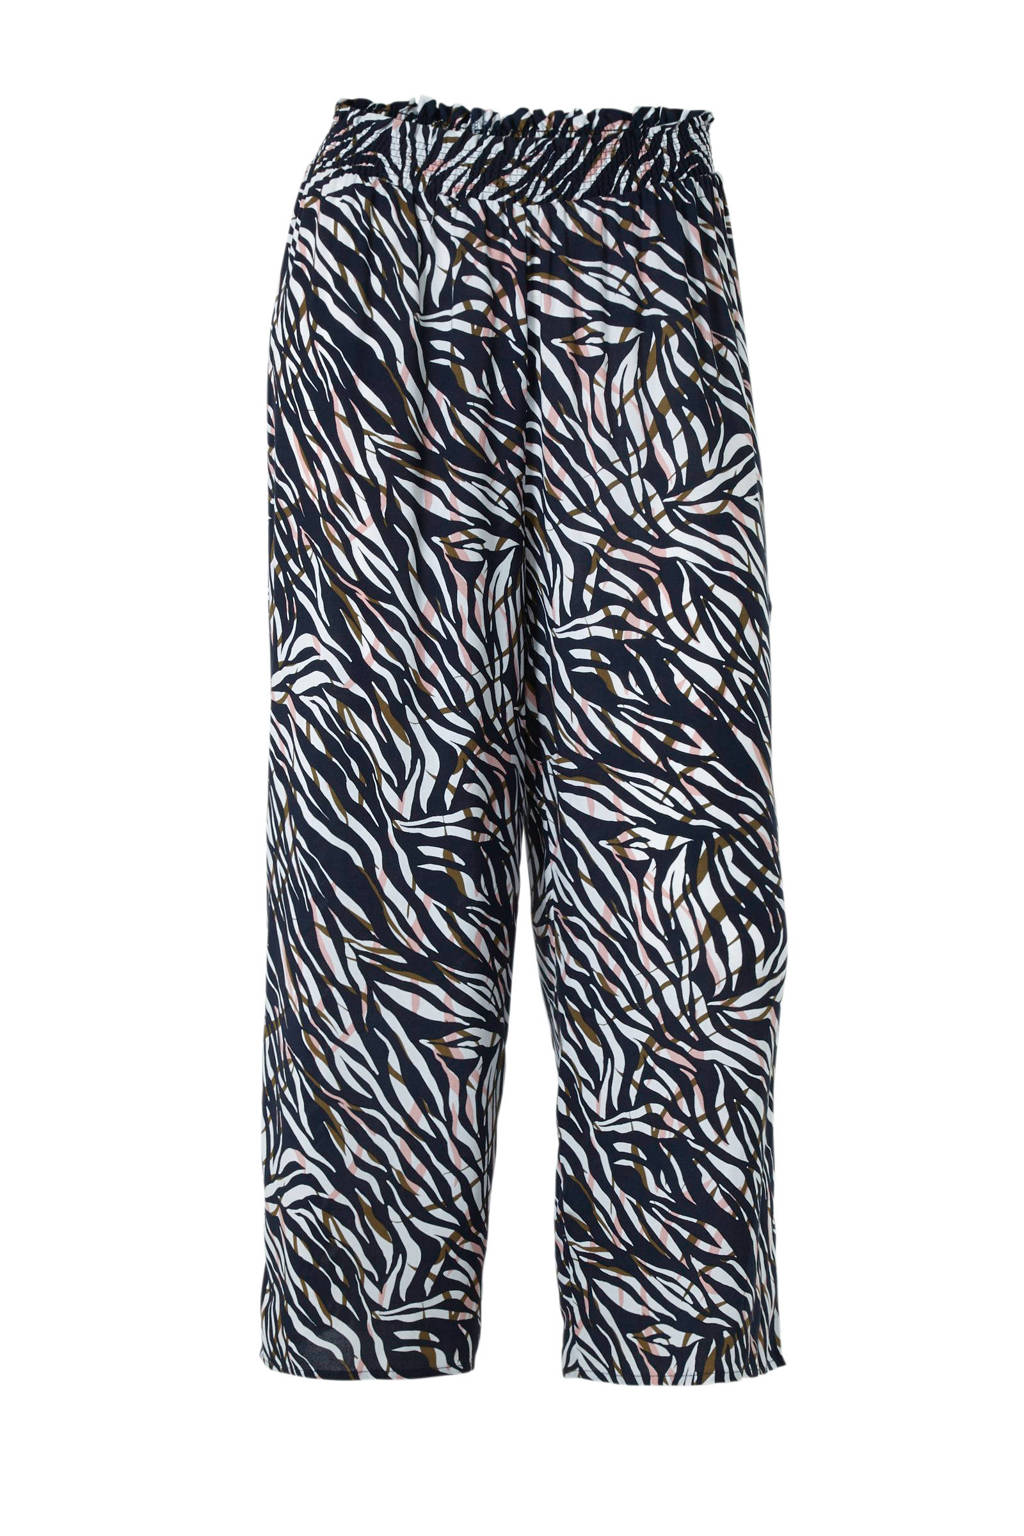 C&A Yessica high waist culotte met all over print donkerblauw, Donkerblauw